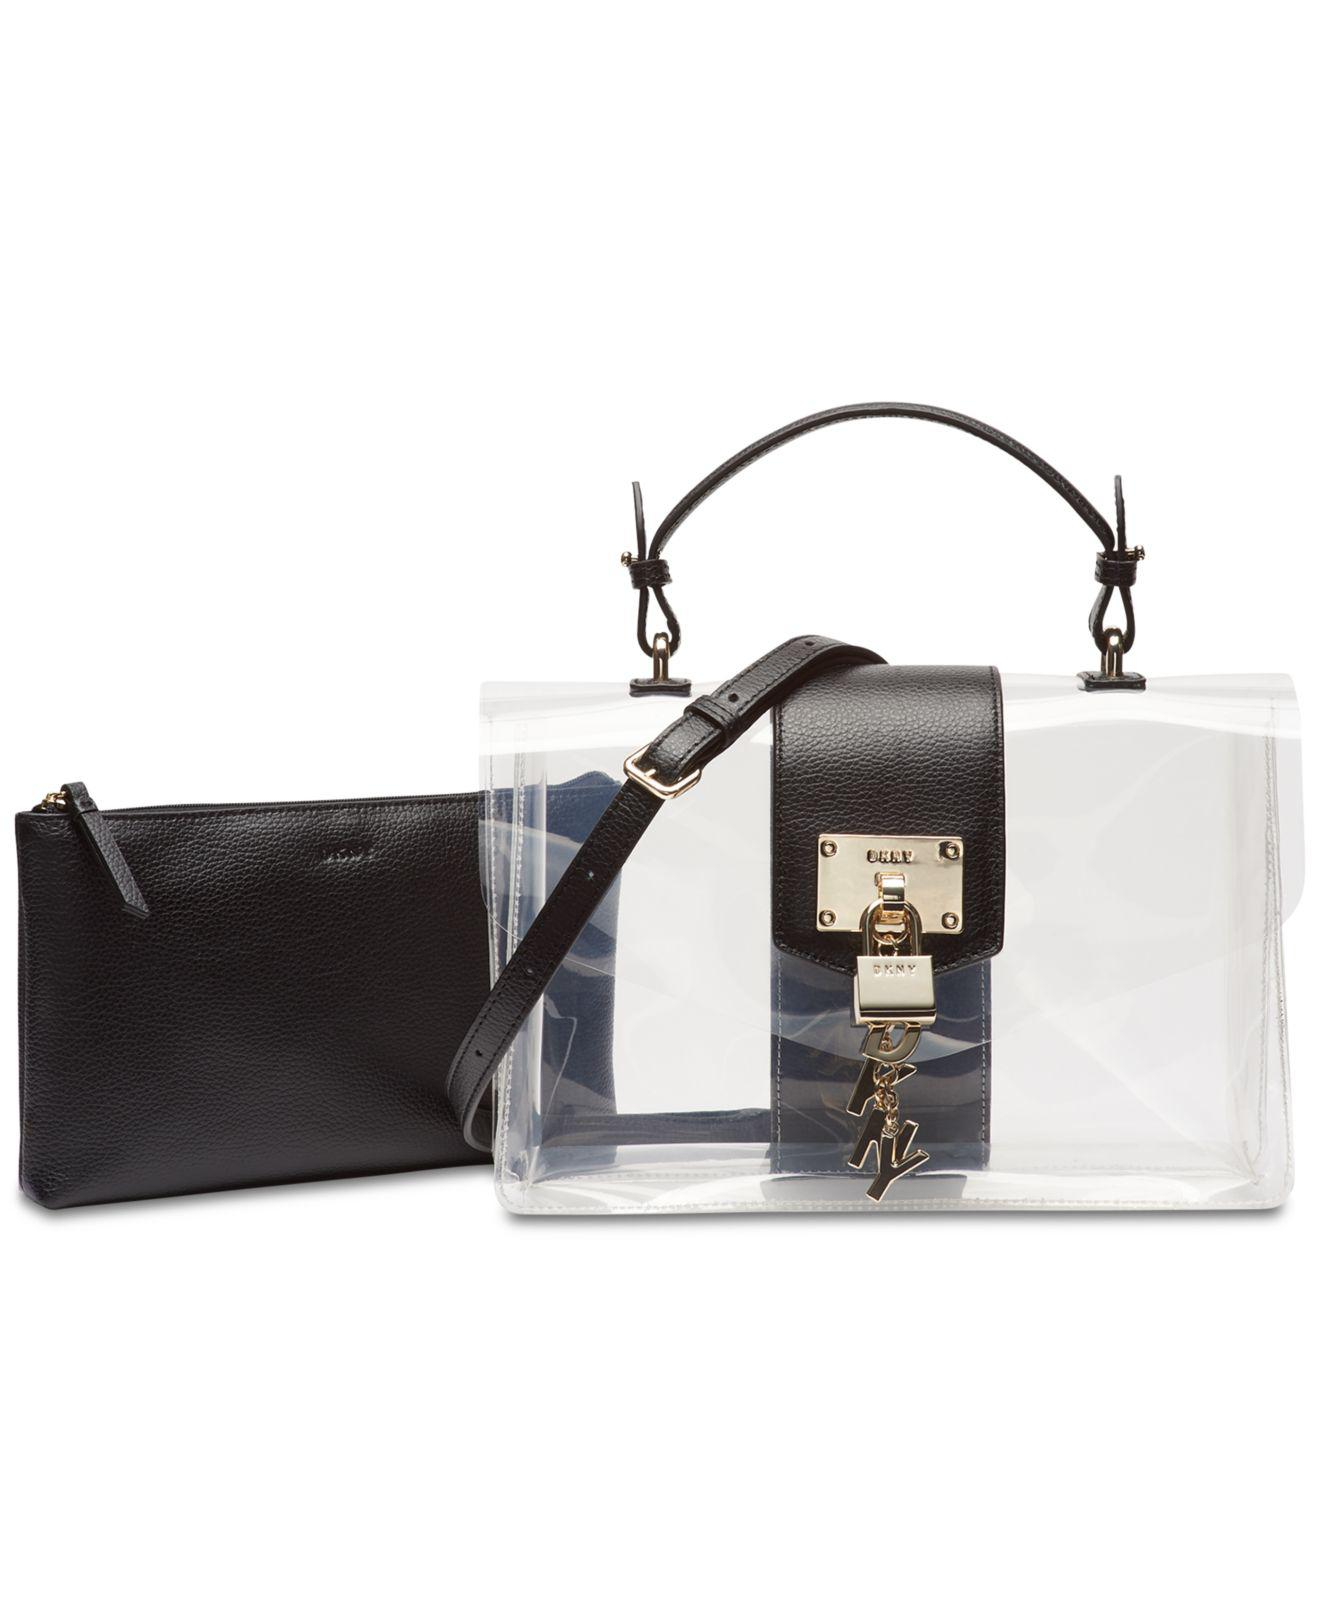 1ebaa9533ec0 Lyst - DKNY Elissa Flap Clear Shoulder Bag